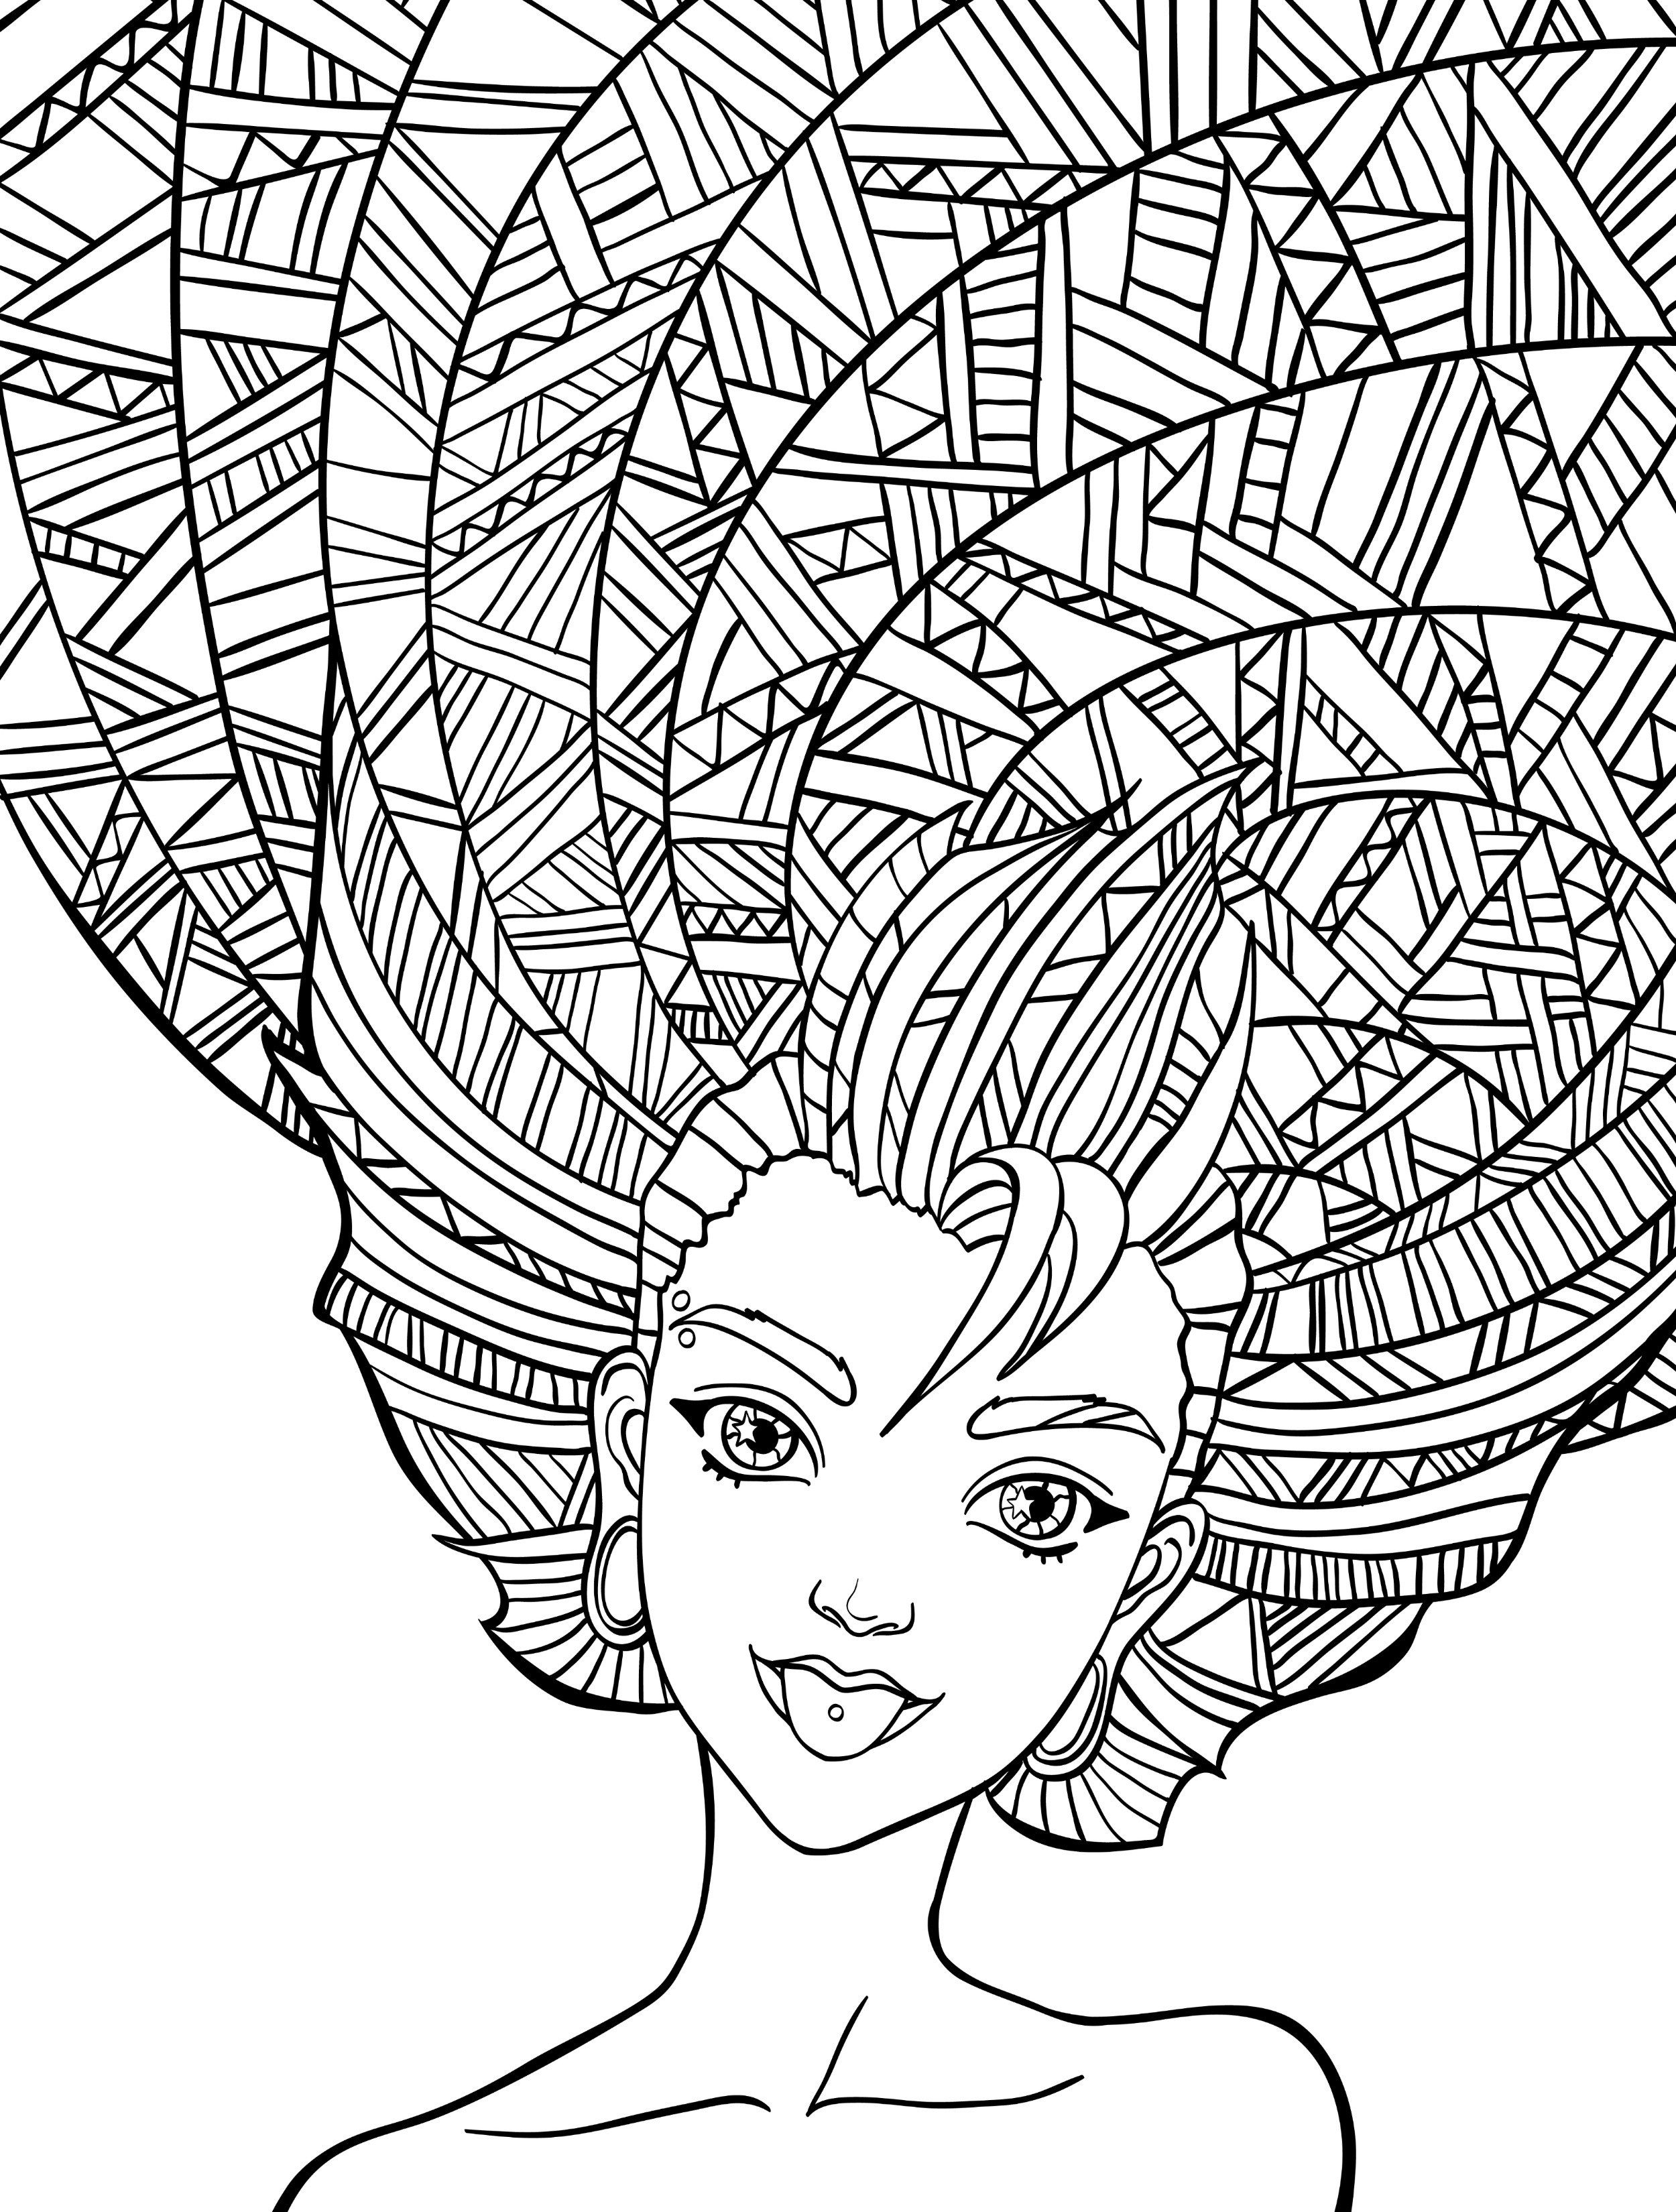 10 Crazy Hair Adult Coloring Pages People Coloring Pages Free